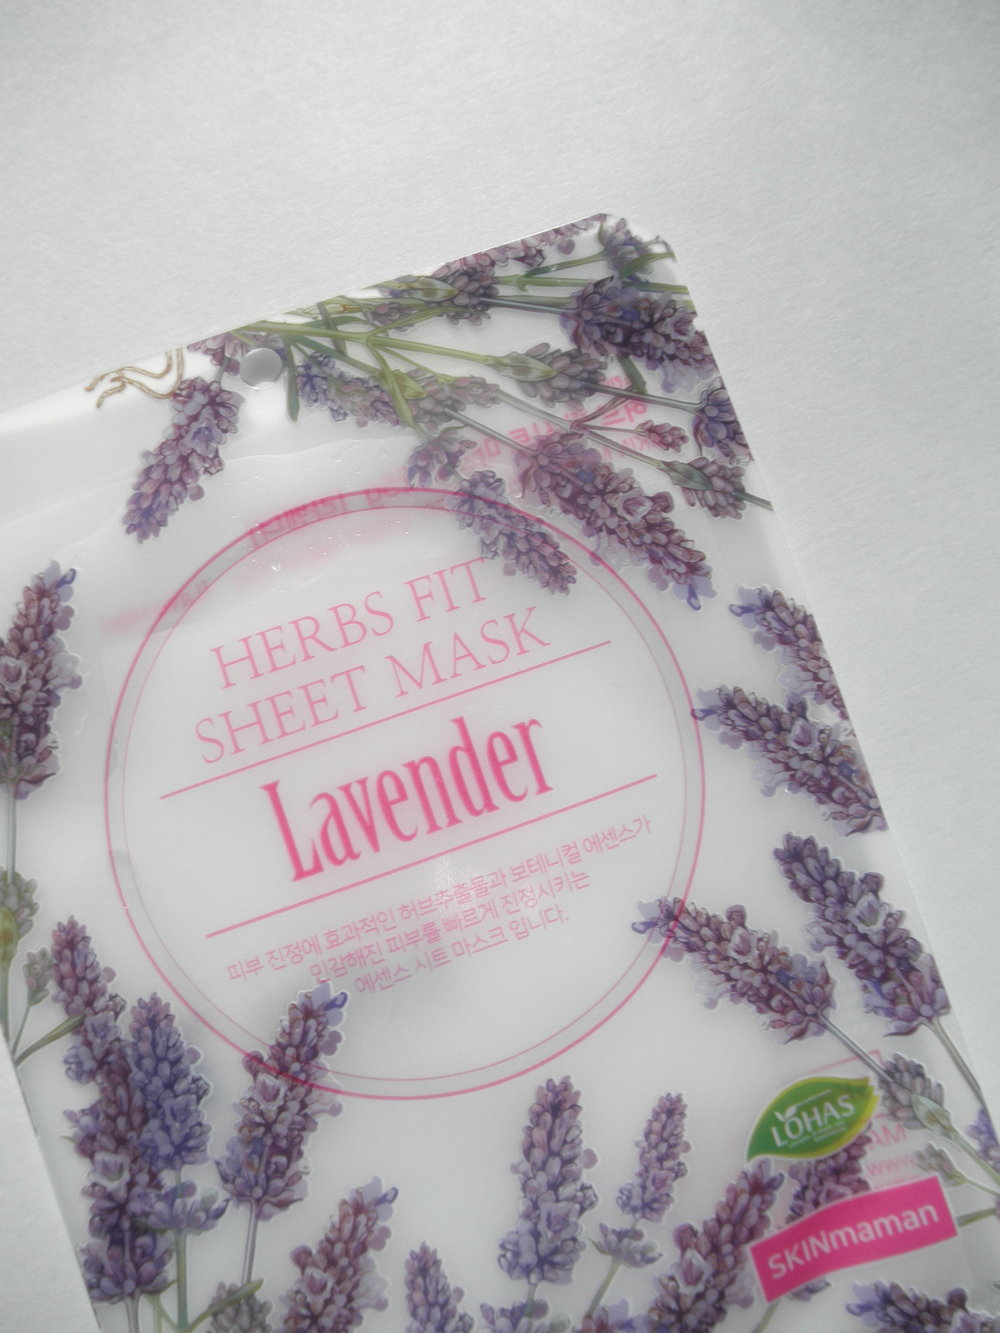 Nohj - Herbs Fit Sheet Mask Lavender -